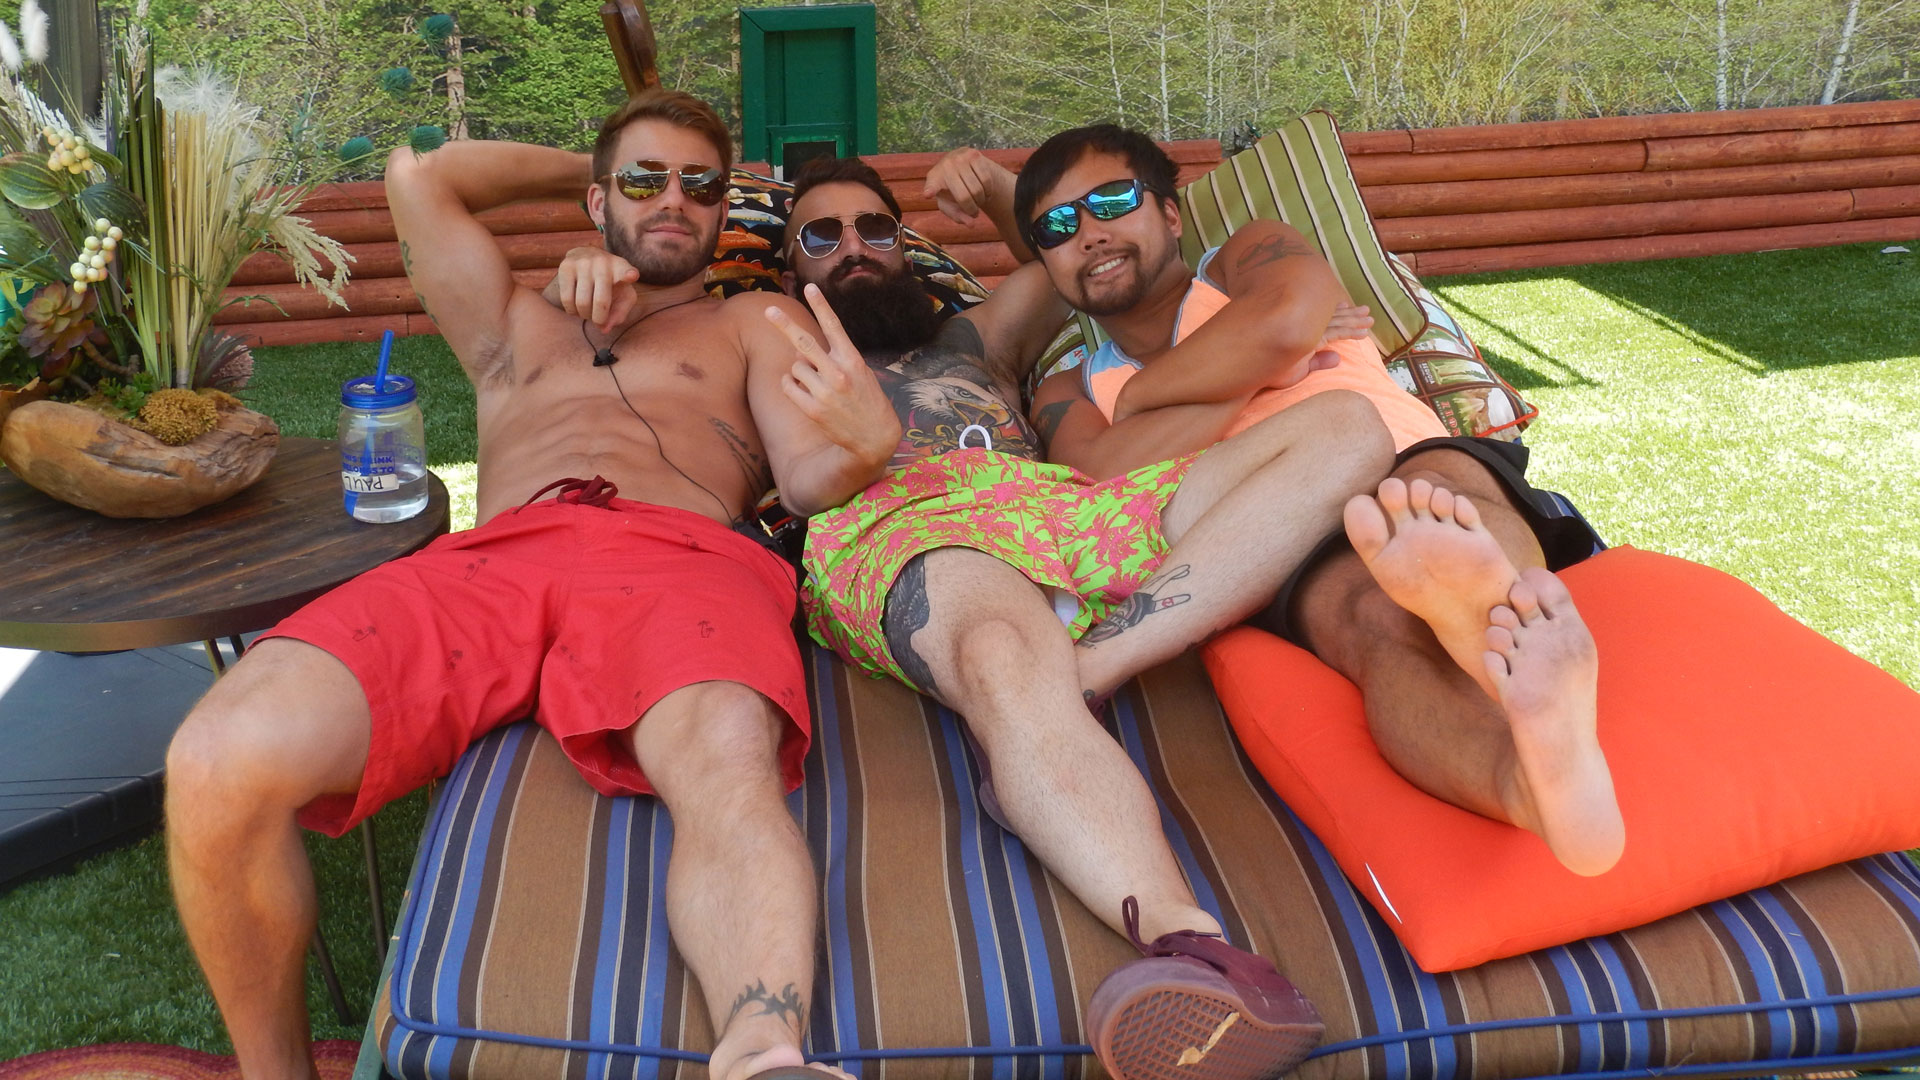 Paulie, Paul, and James lounge on the chaise.